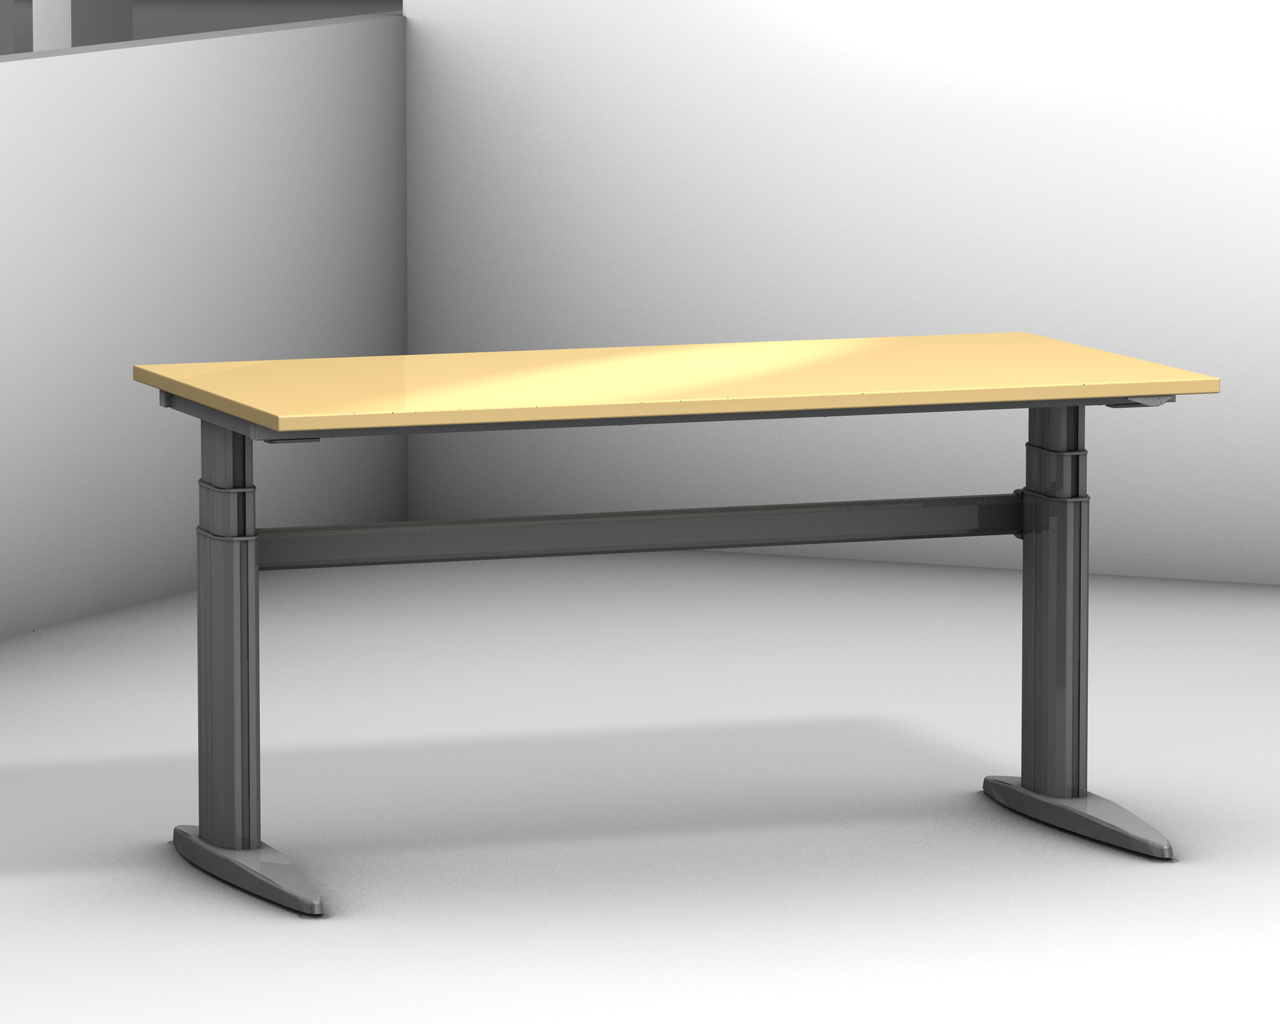 BZ Plankenhorn products - your specialist for office desks and height-adjustable stand and sit solutions.